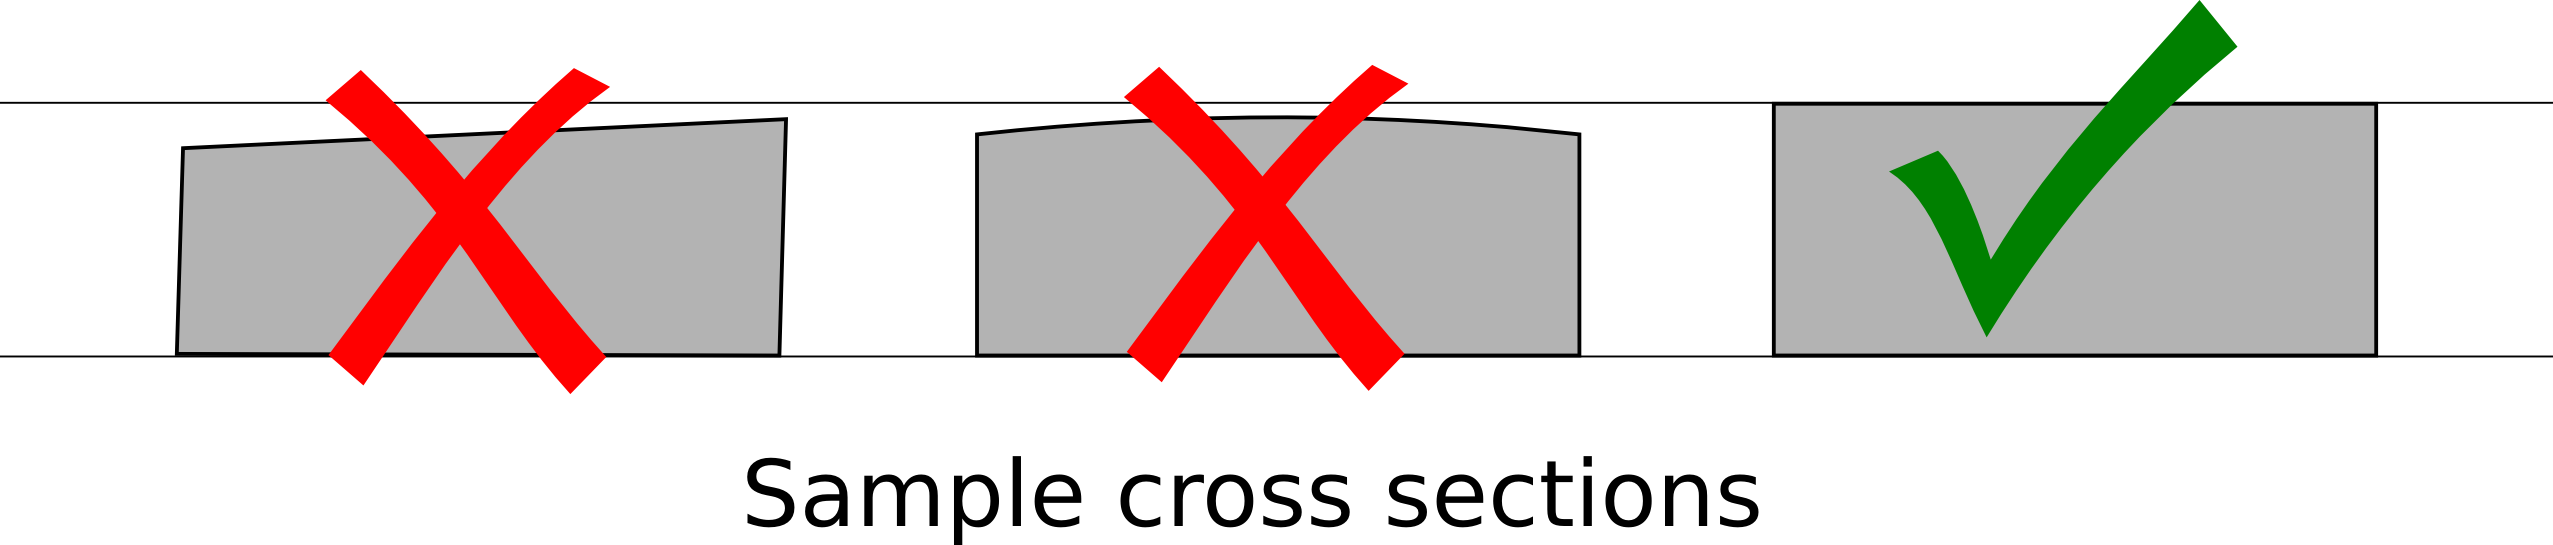 Image of sample cross sections and possible mistakes